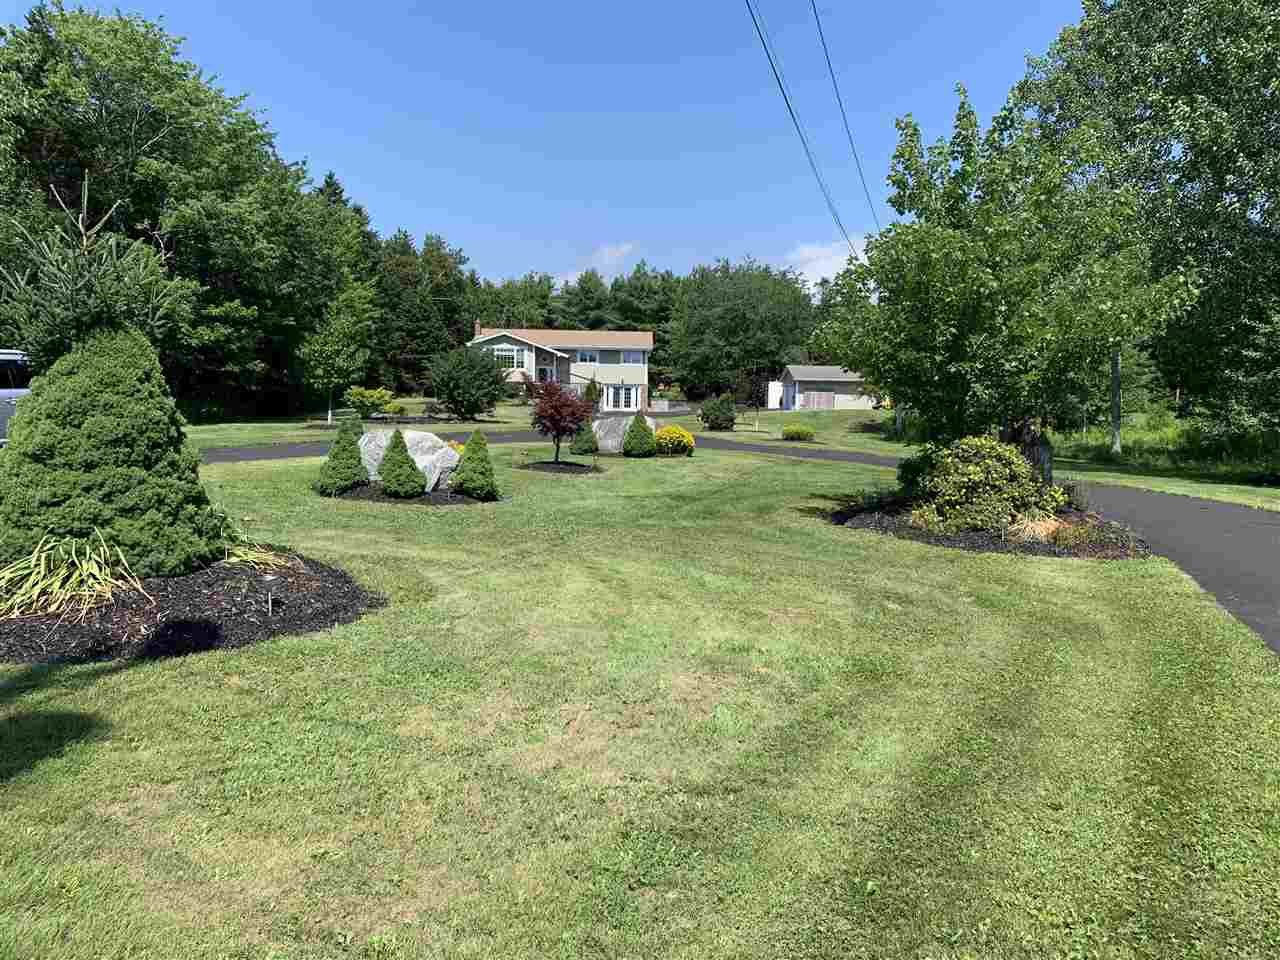 Main Photo: 281 Highway 1 in Mount Uniacke: 105-East Hants/Colchester West Residential for sale (Halifax-Dartmouth)  : MLS®# 202014586